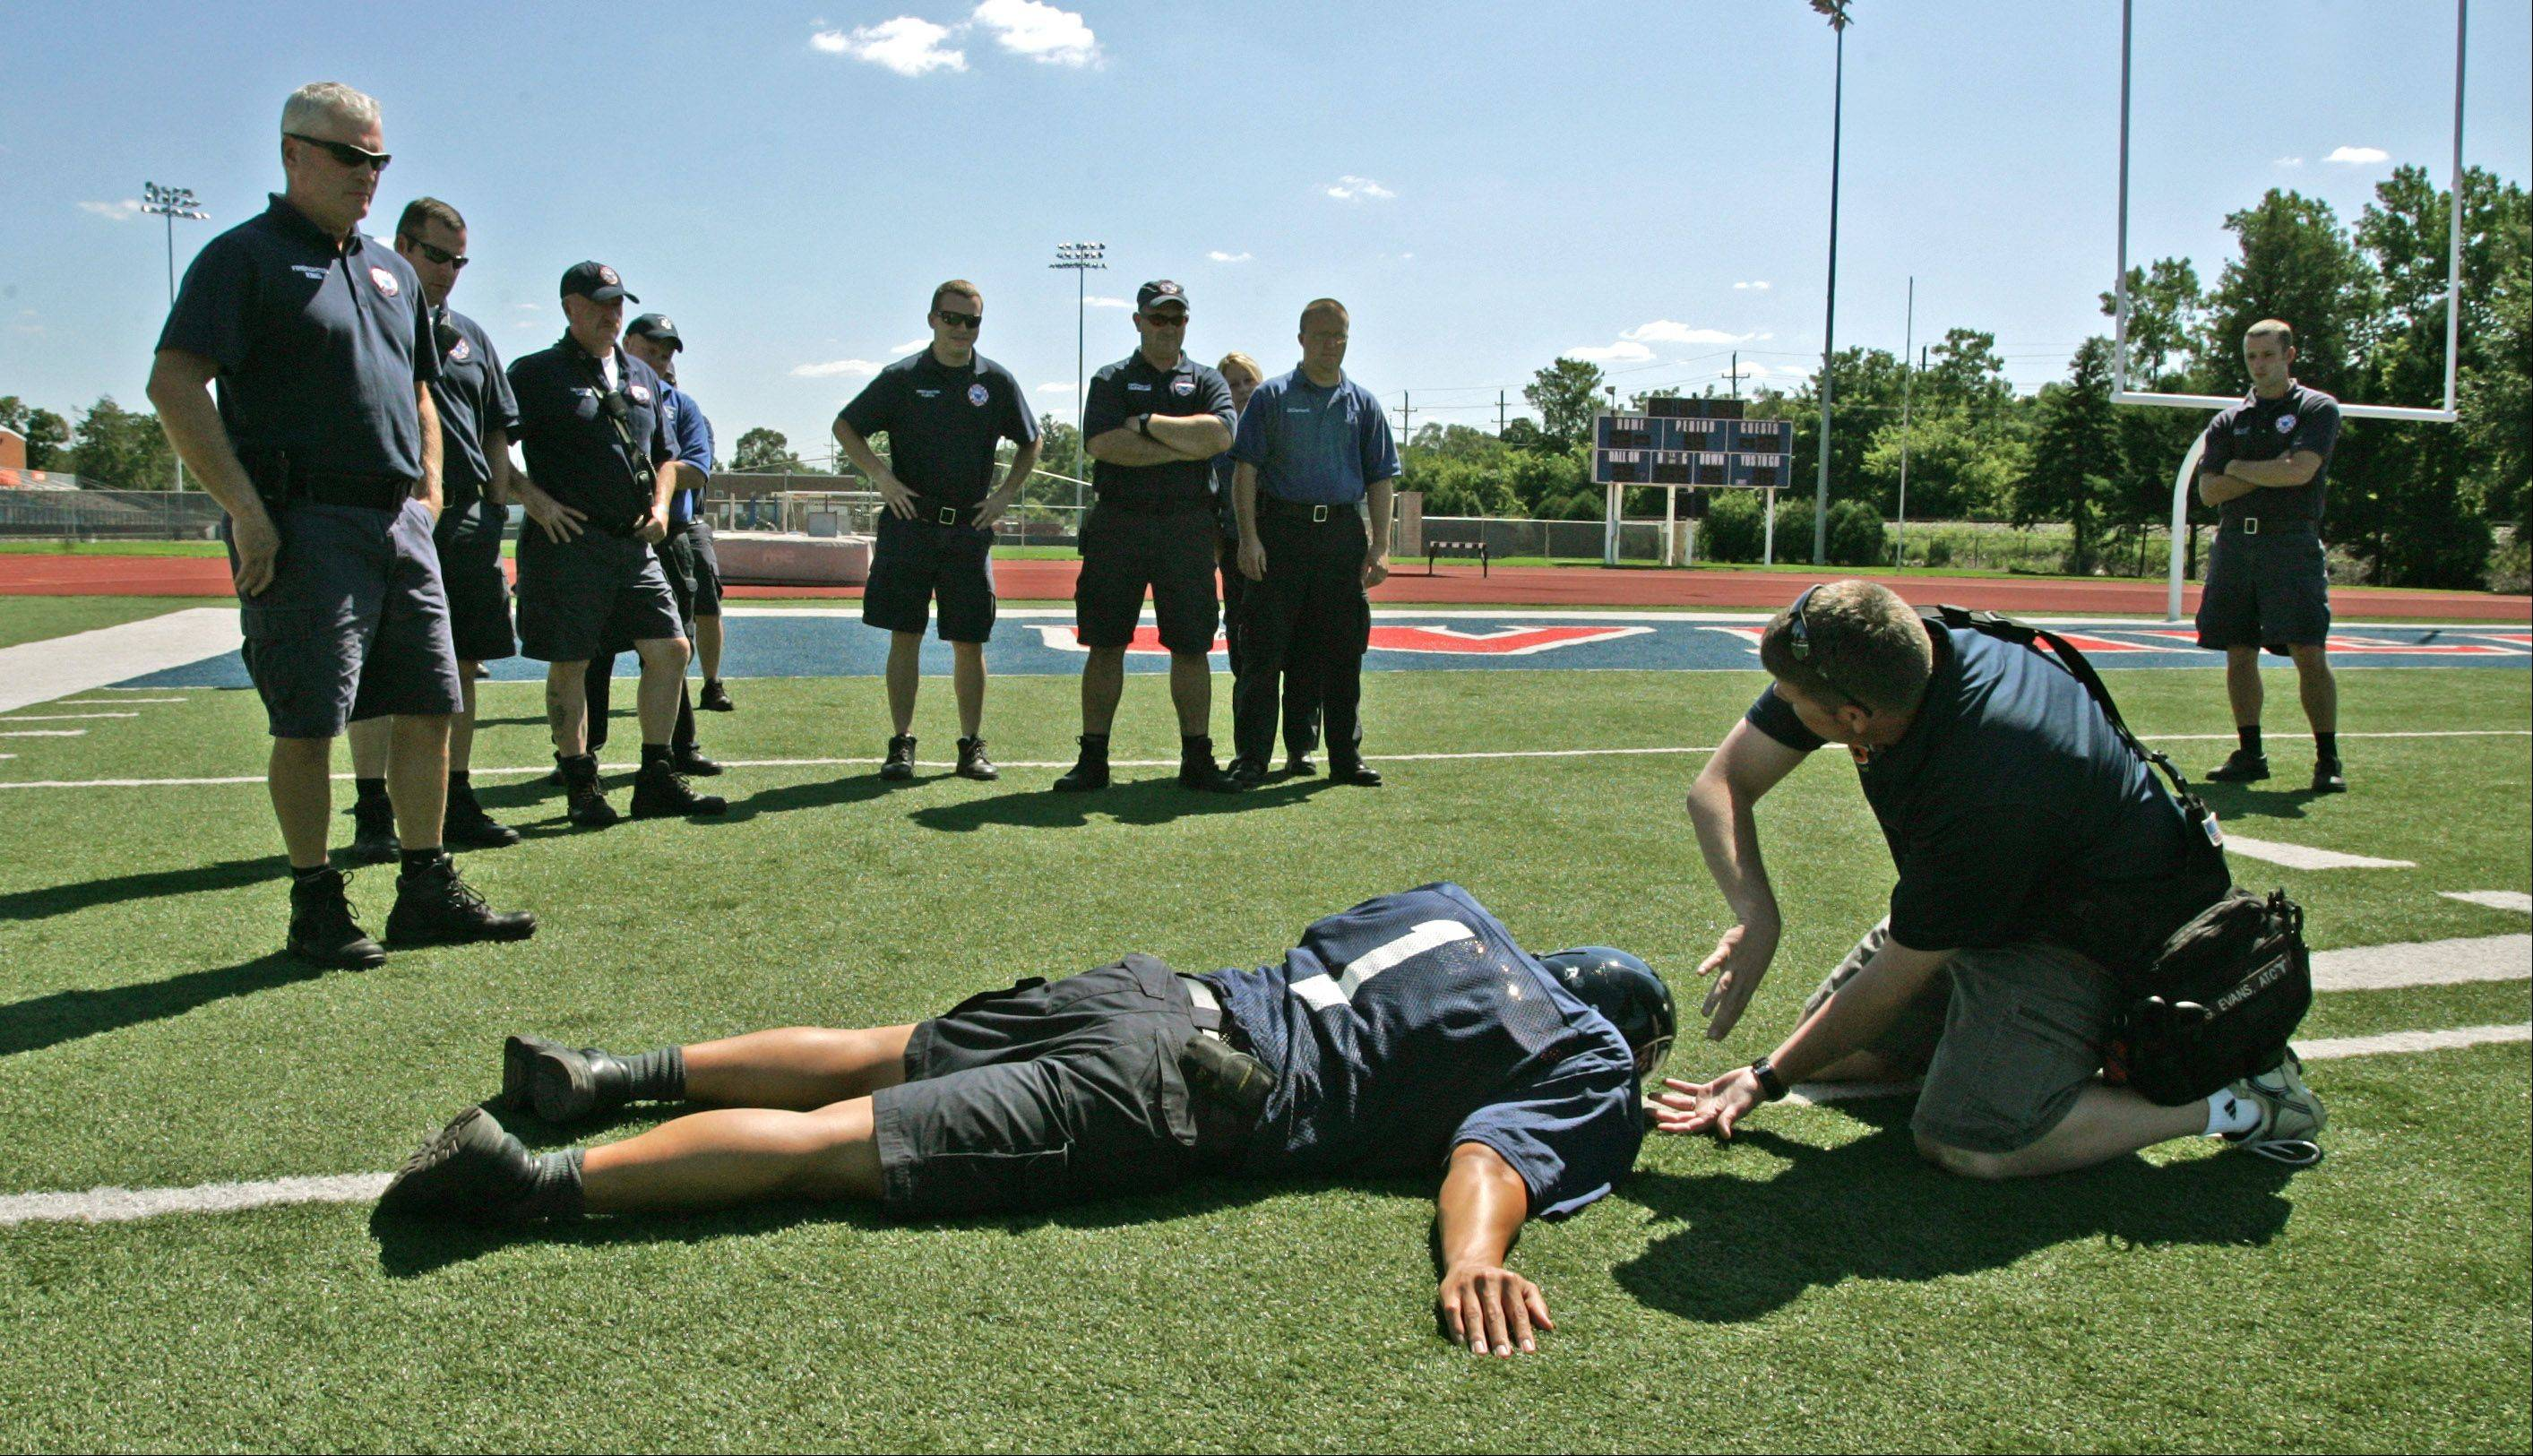 Wheaton College head athletic trainer Greg Evans, right, talks to Wheaton Fire Department personnel about moving spinal injury patients. Firefighter Willie Cox poses as an injured football player during the once-a-year refresher course.